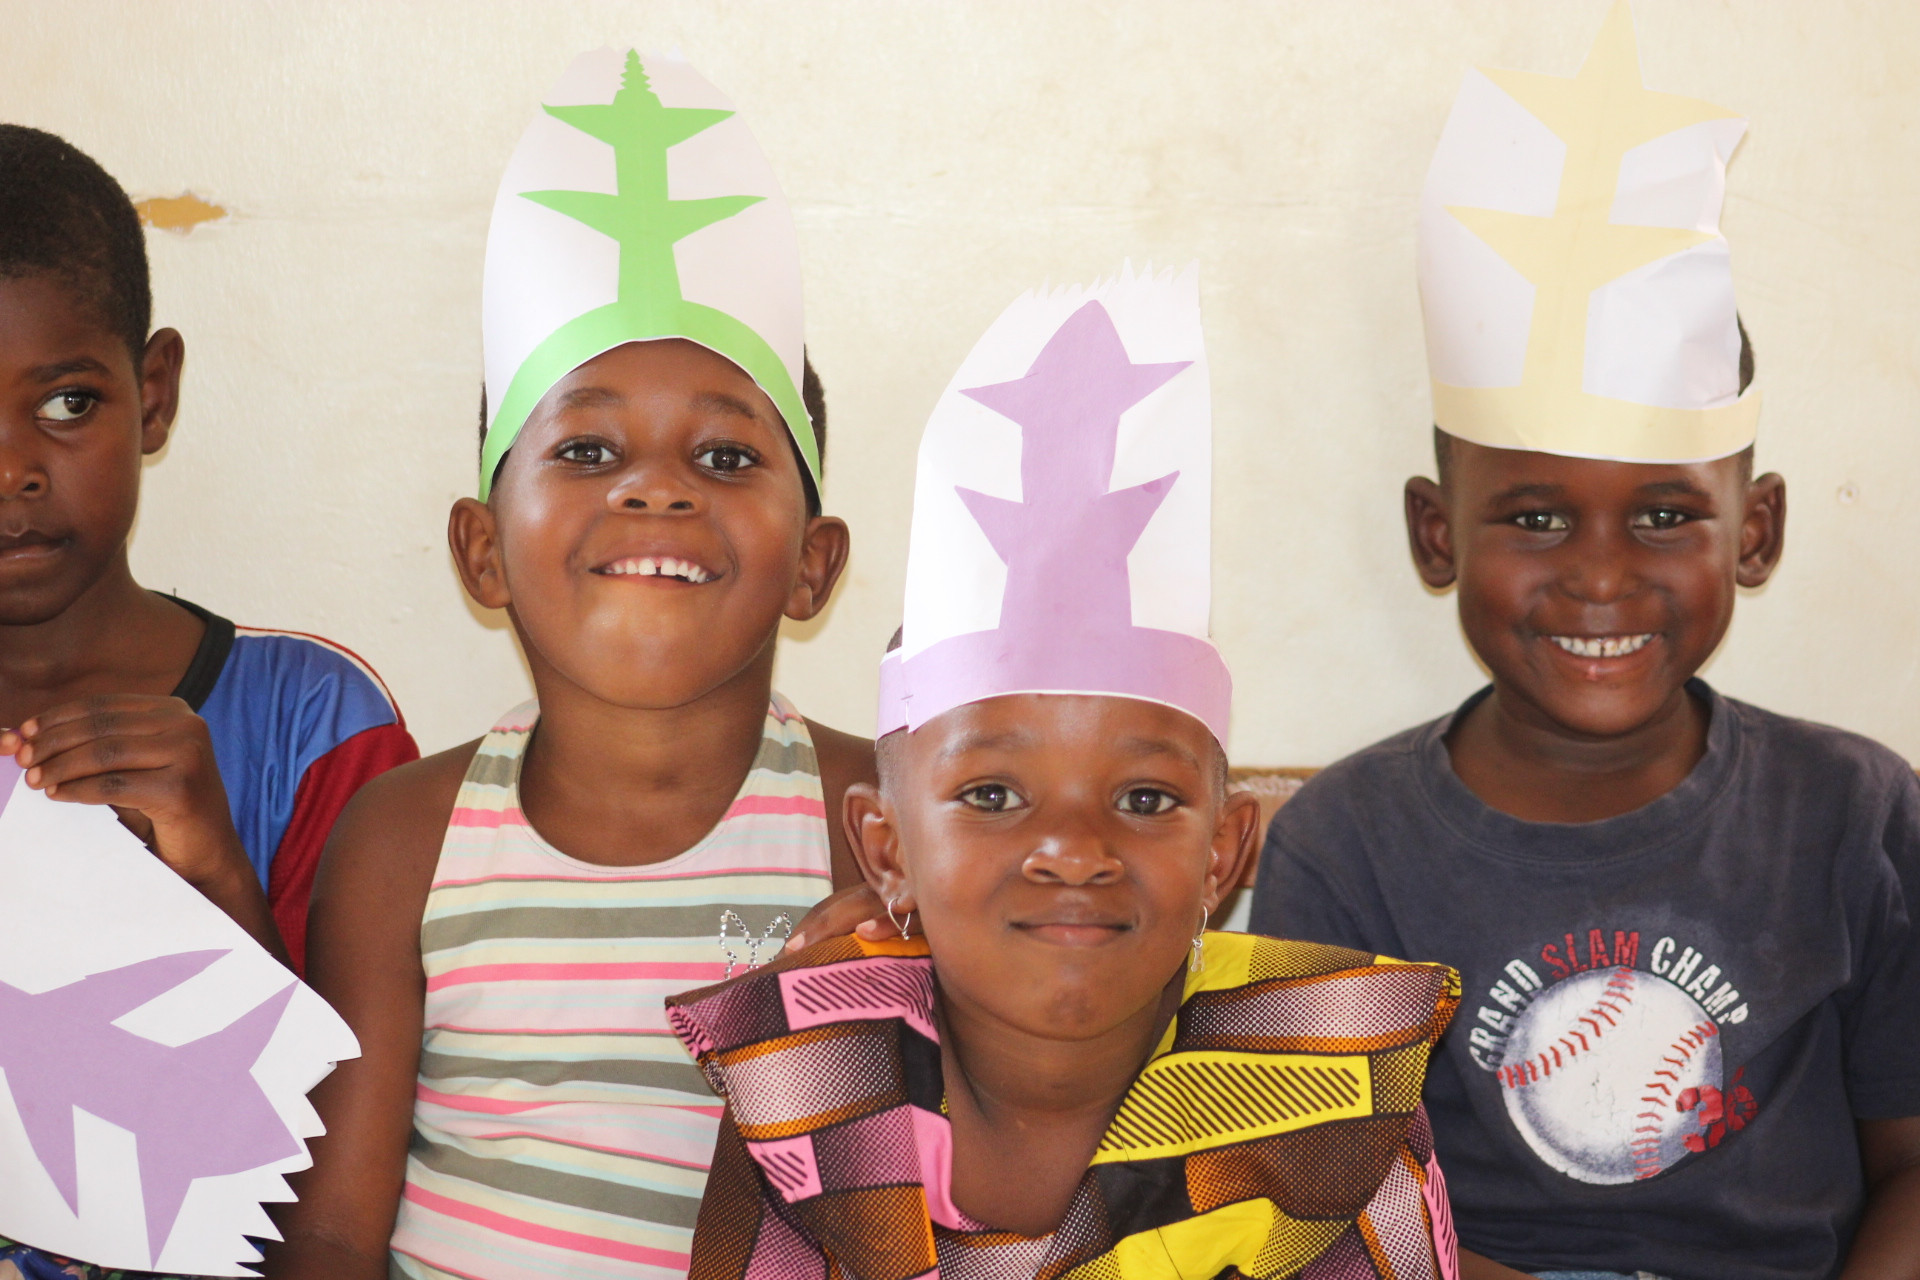 In the Gisimba Early Childhood Program, young children have access to early education, recreation, proper nutrition in a trauma-informed perspective. Often supporting single mothers, the Early Childhood program supports mother-child dyad relationships, fostering healthy bonds between child and a caregiver.